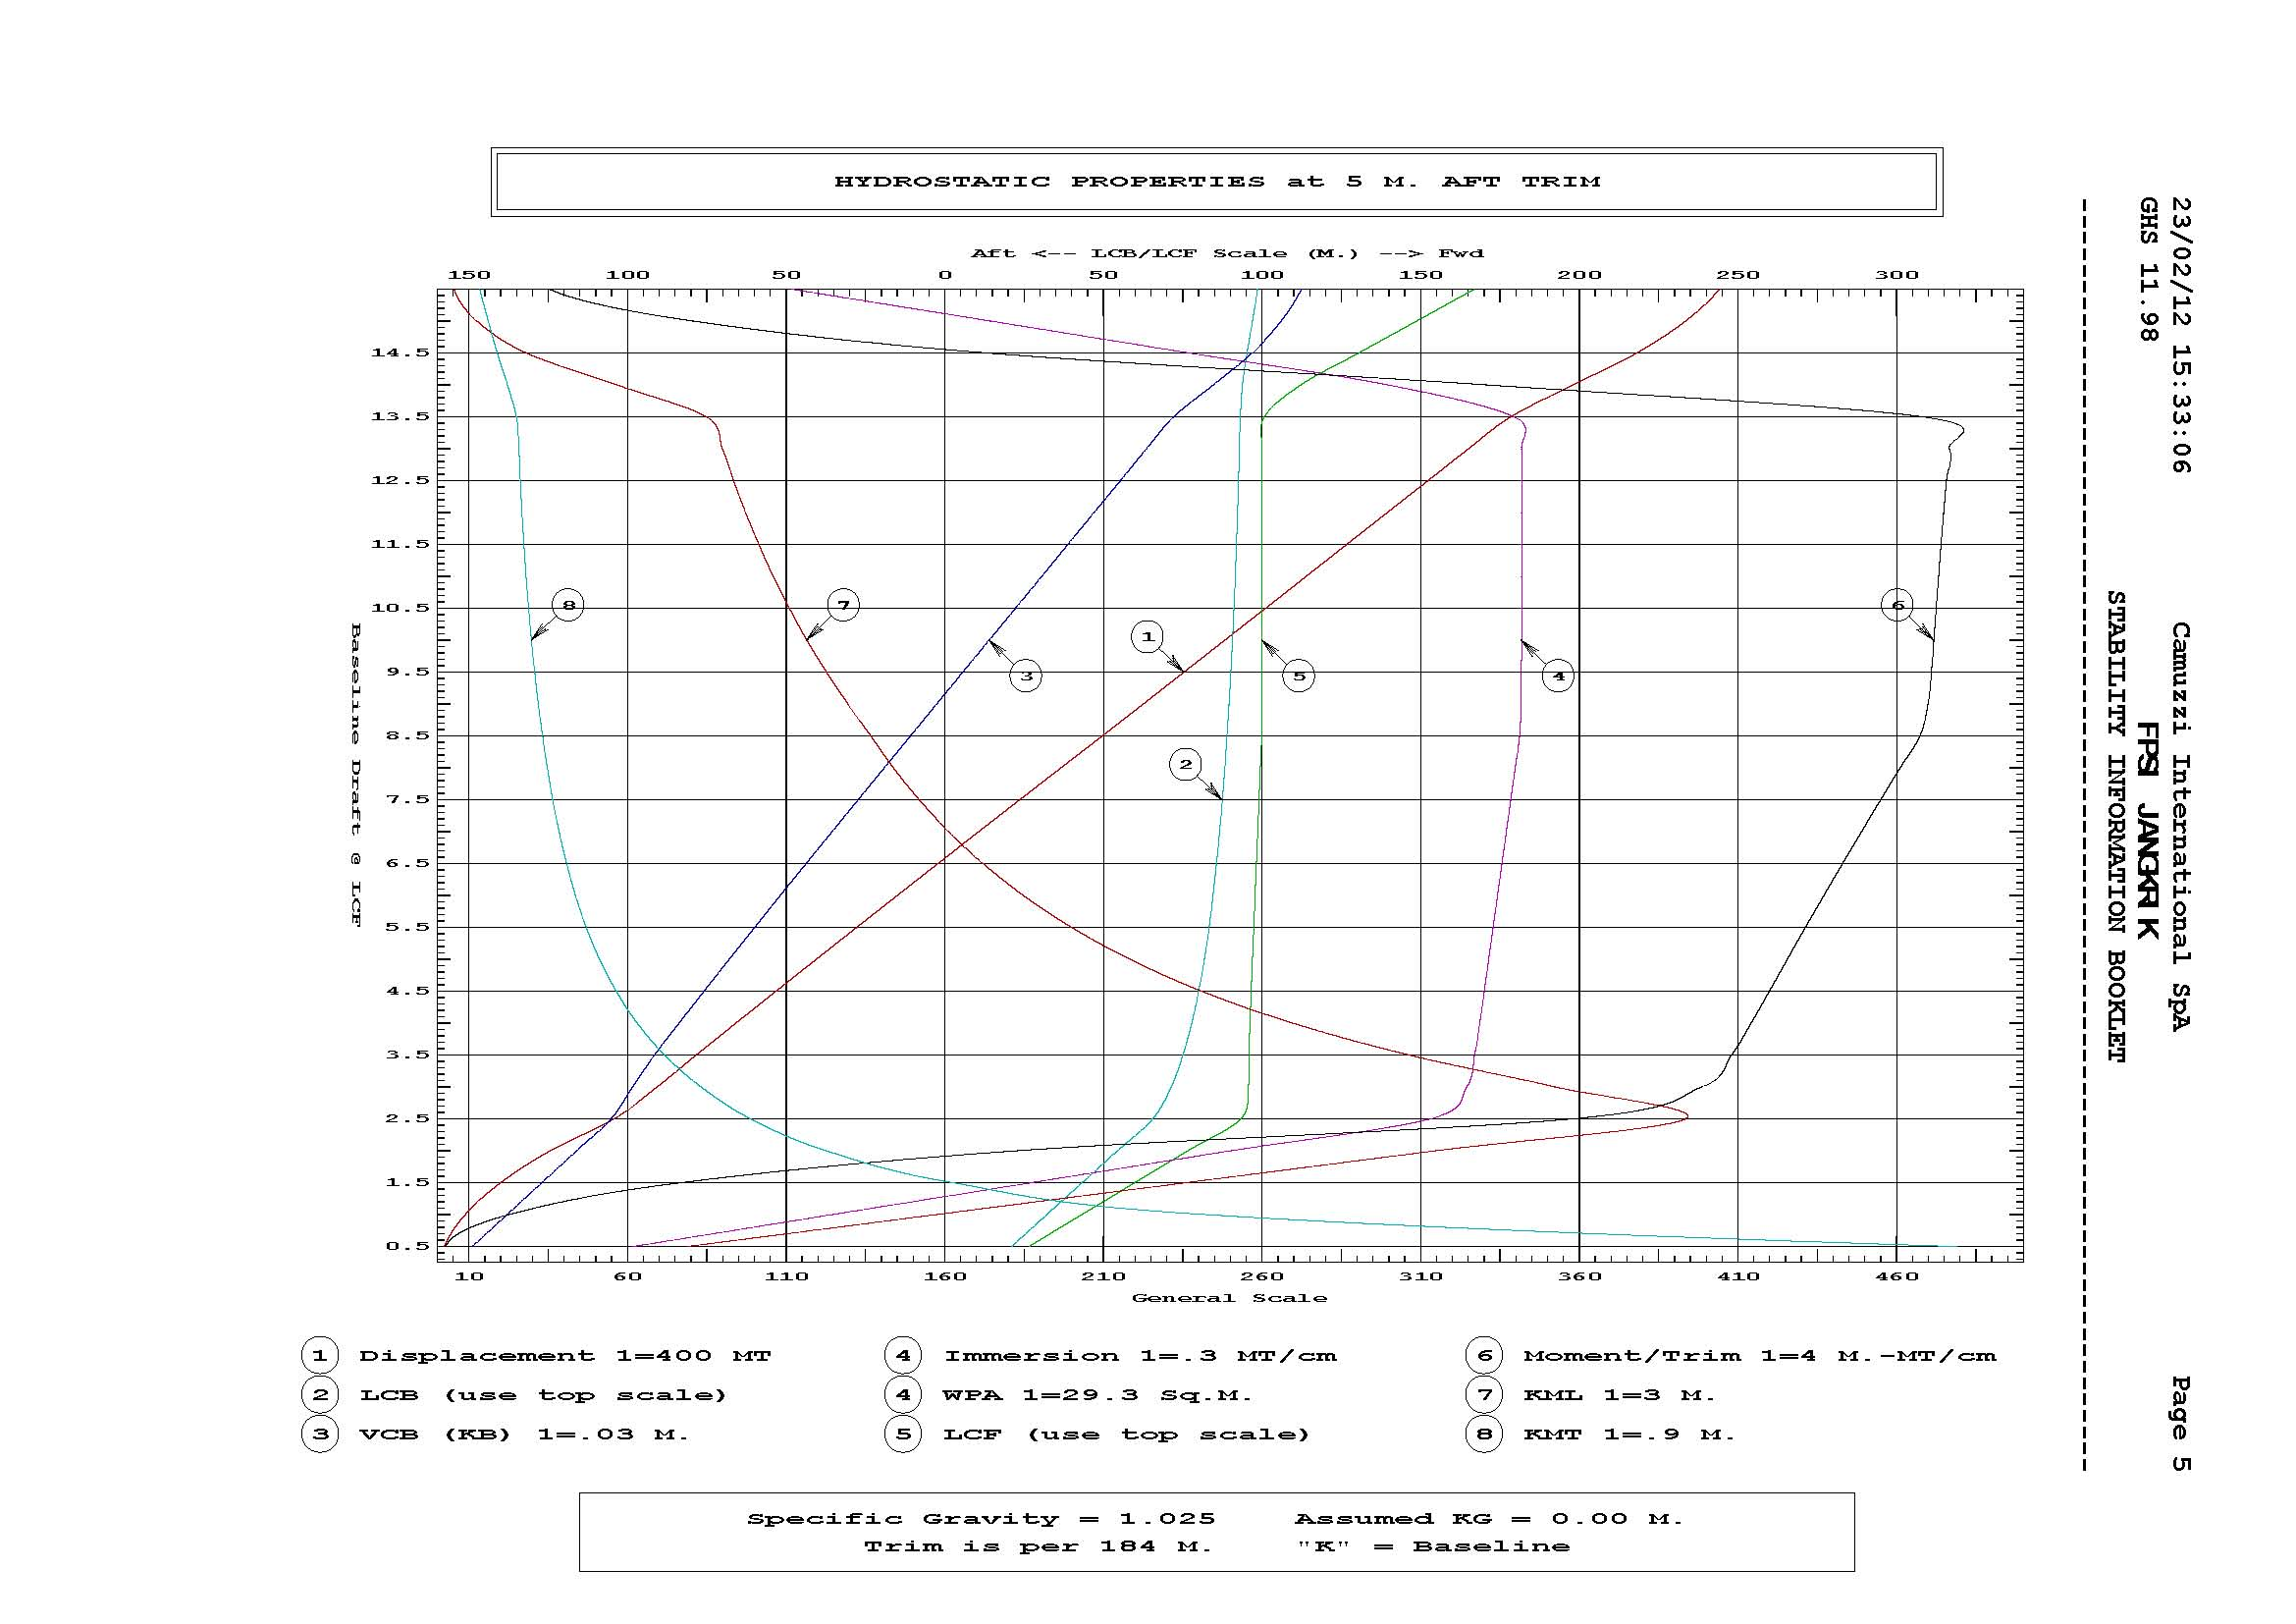 STAB-0-HYDROSTATIC-TABLES-CURVES-DRAFT-23-02-12_Page_05 What Is A Schematic Plan on cell plans, design plans, pool deck plans, table plans, project plans, switch plans, layout plans, electrical plans, construction plans, data plans, preliminary plans, architectural plans, living room plans, power plans, strategic plans, mechanical plans, line plans, box plans,